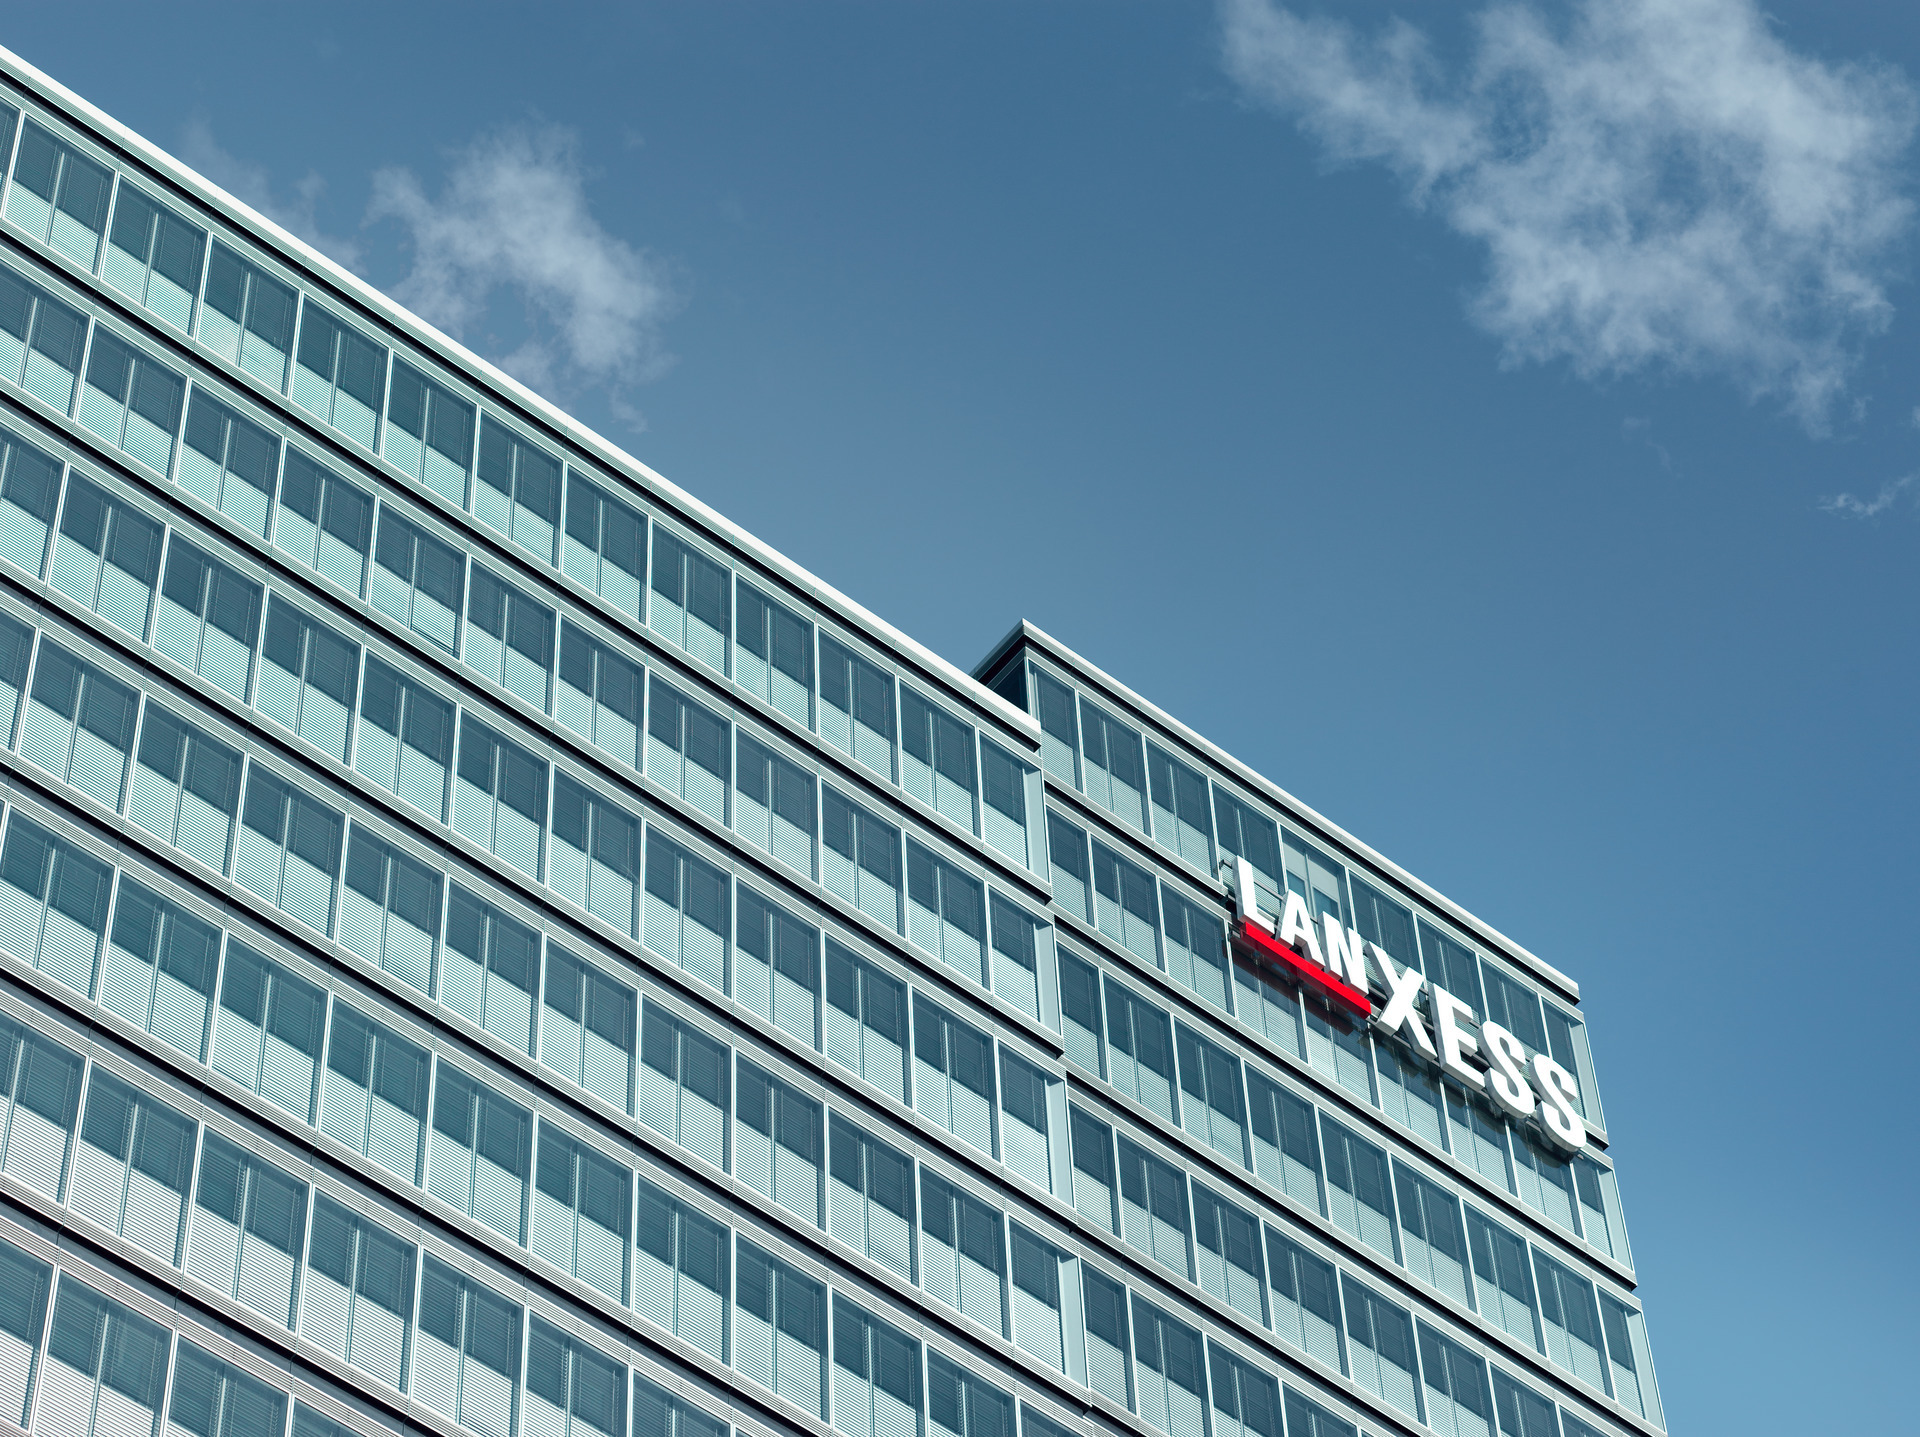 LANXESS Headquarters in Cologne